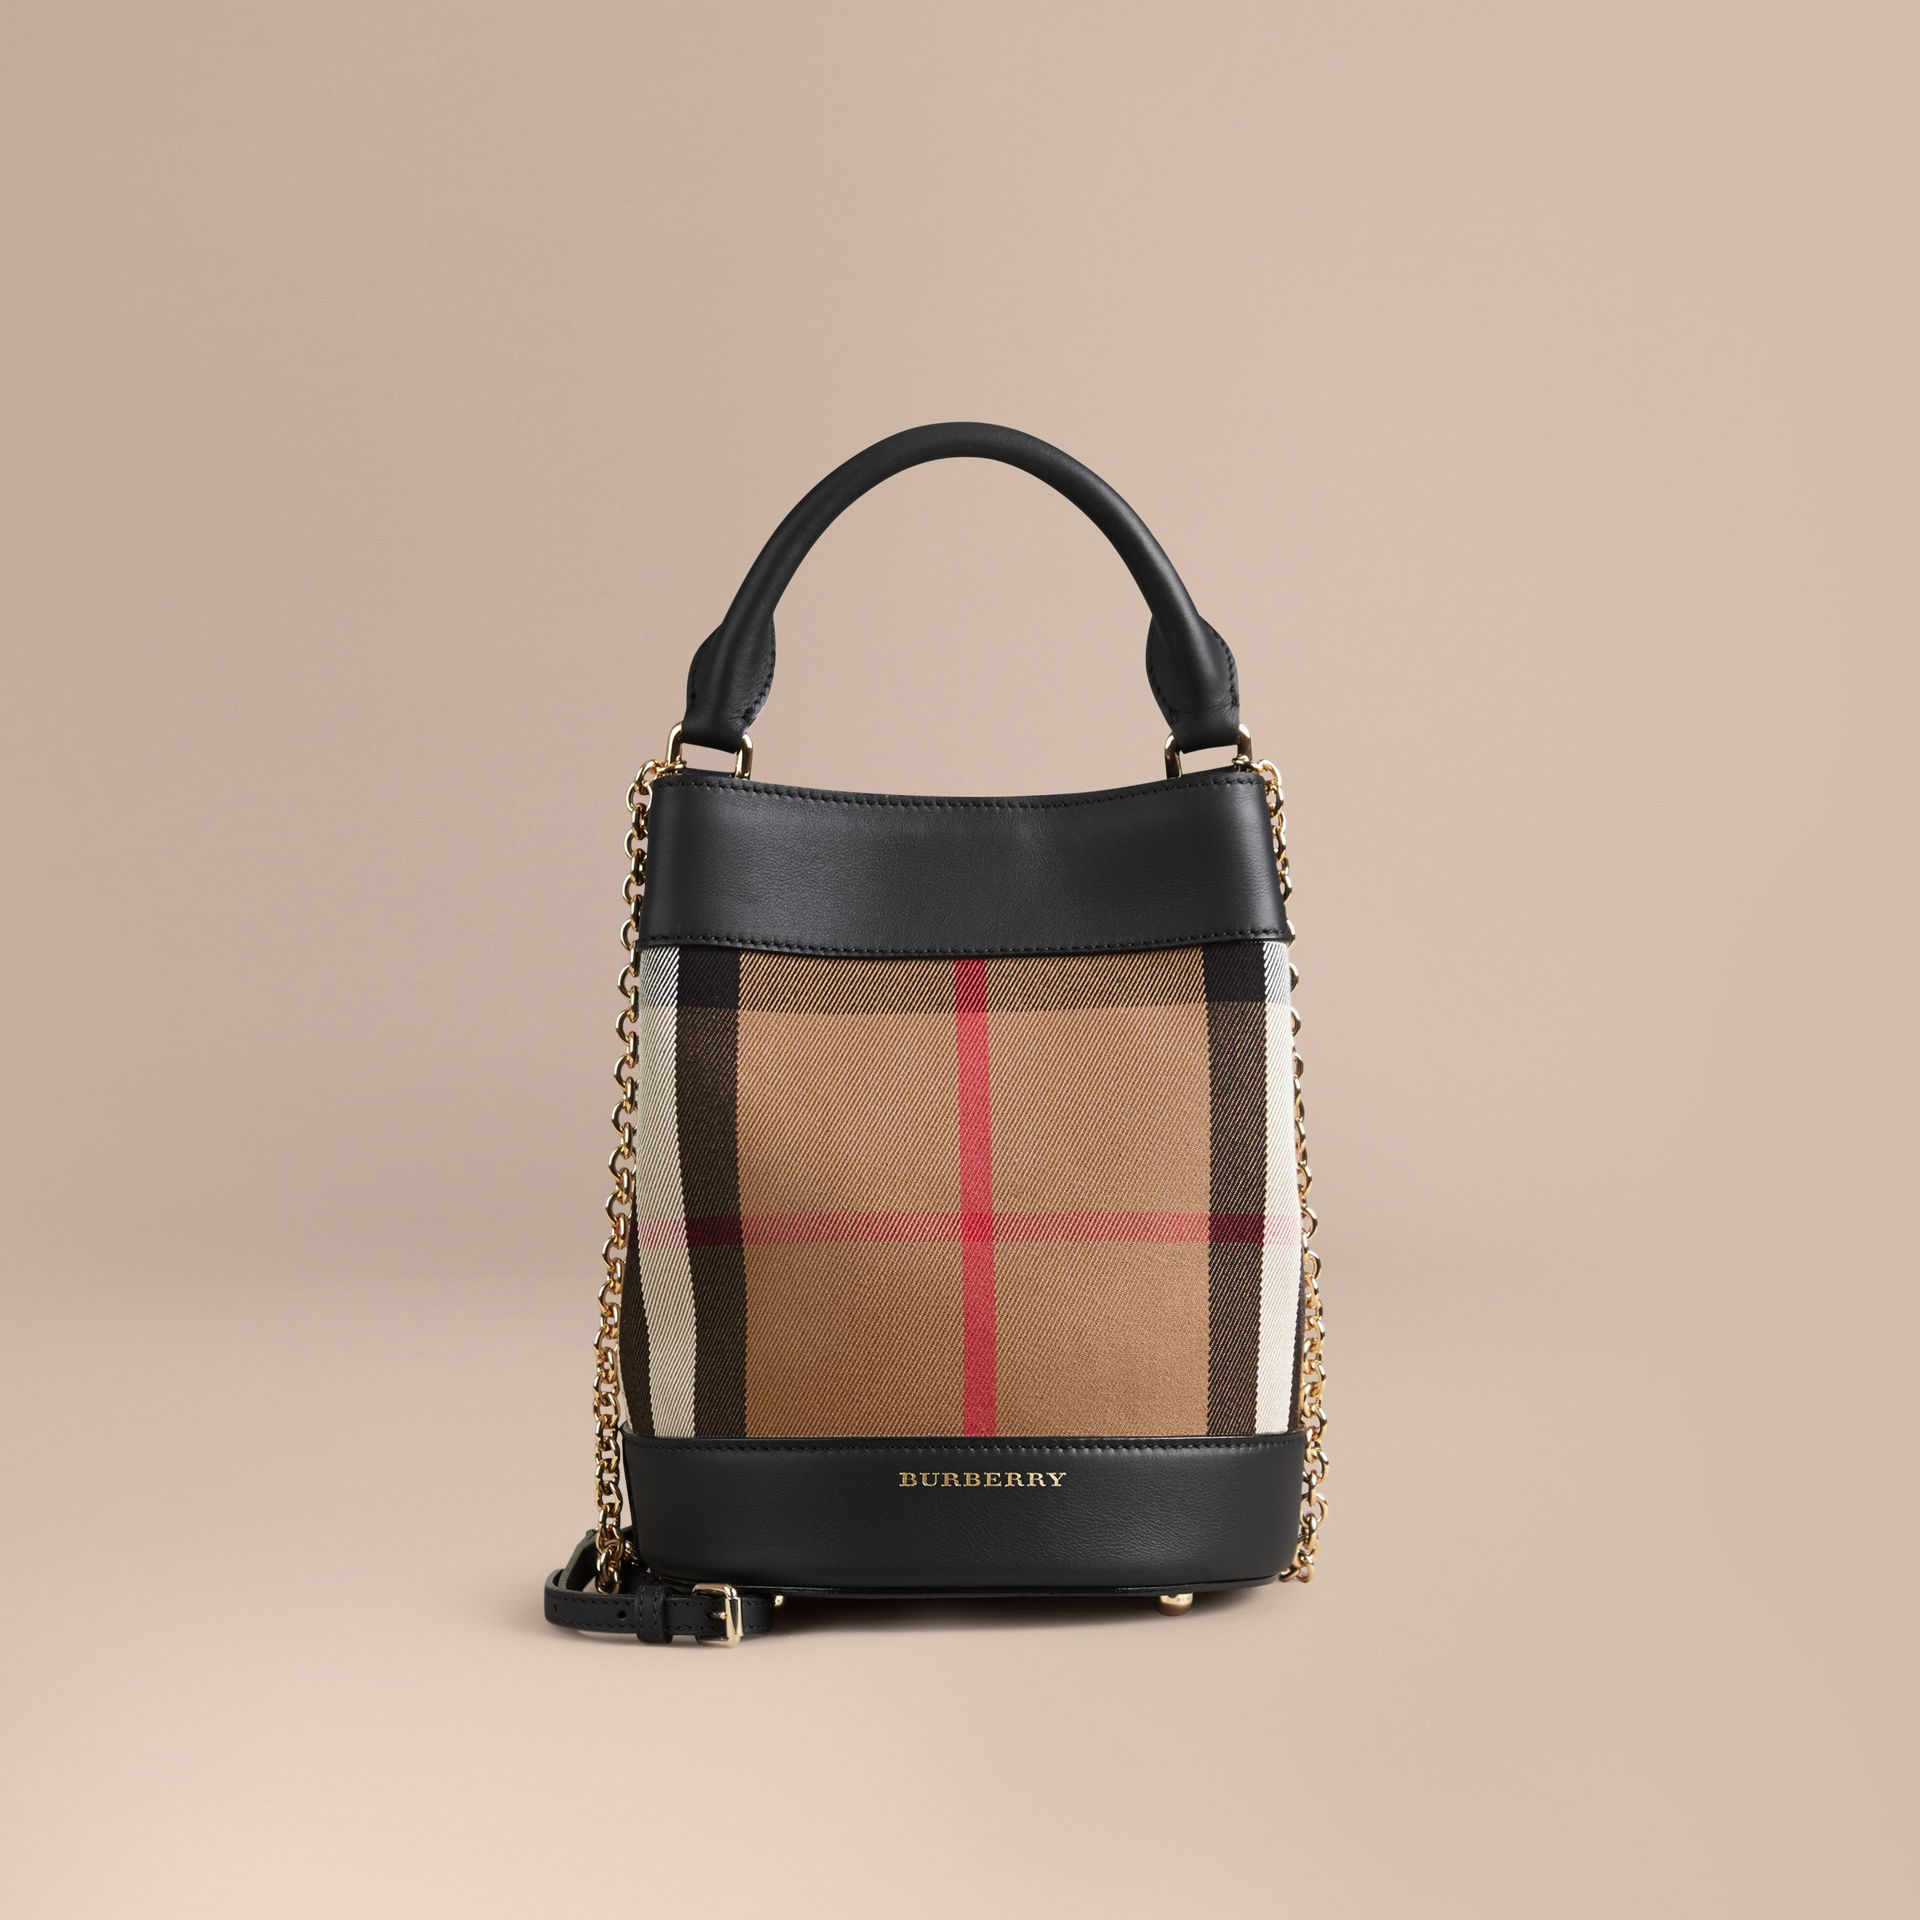 Noir Petit sac Burberry Bucket en coton House check et cuir - photo de la galerie 7